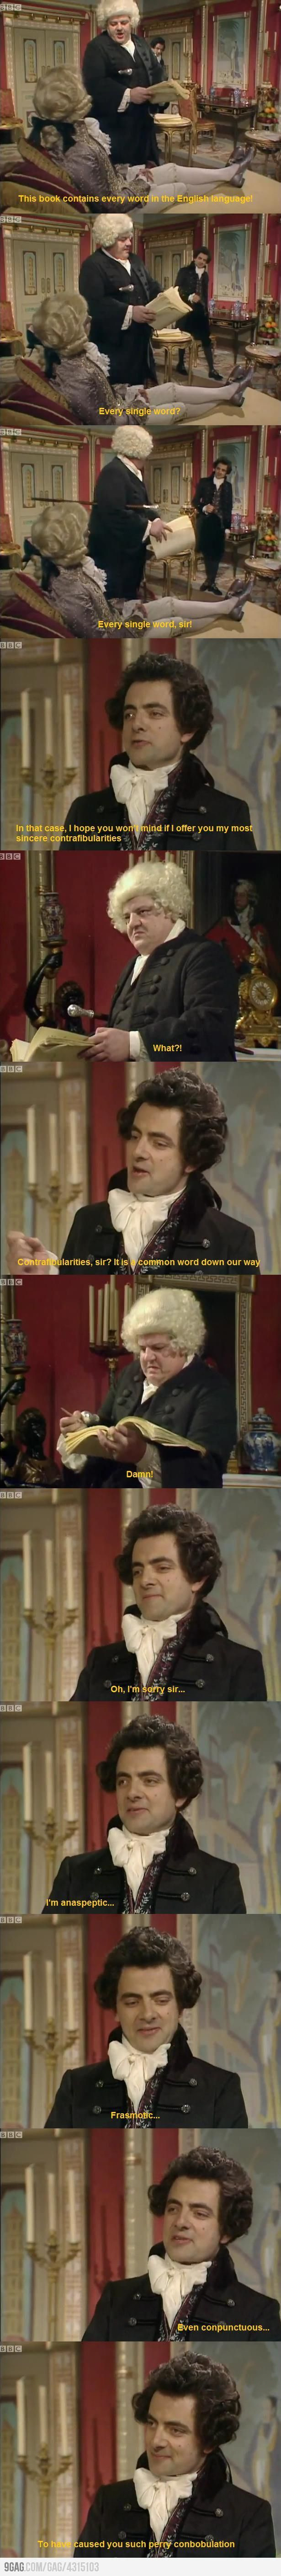 Black Adder trolling Dr. Johnson. One of the funniest scenes in Blackadder. This Blackadder was my favourite